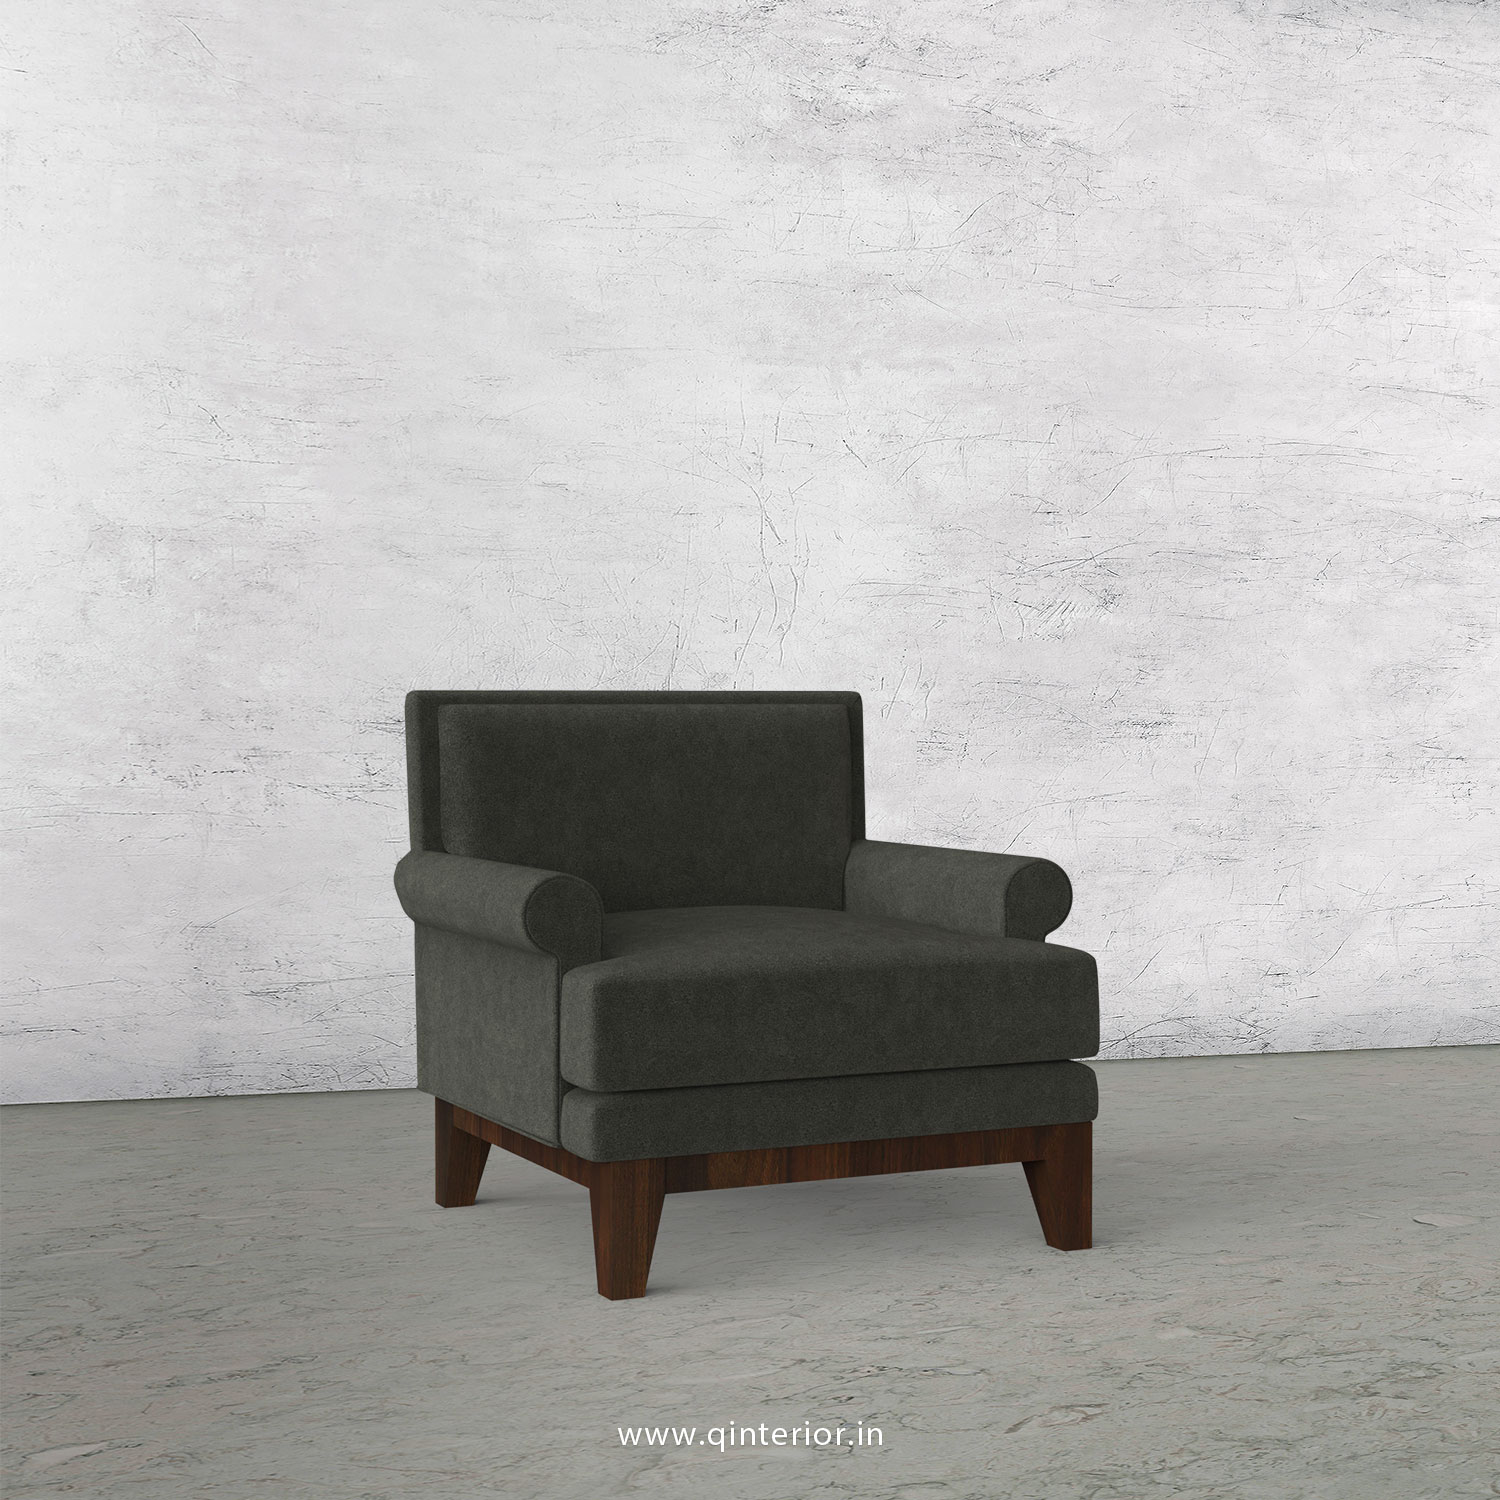 Aviana 1 Seater Sofa in Velvet Fabric - SFA001 VL15